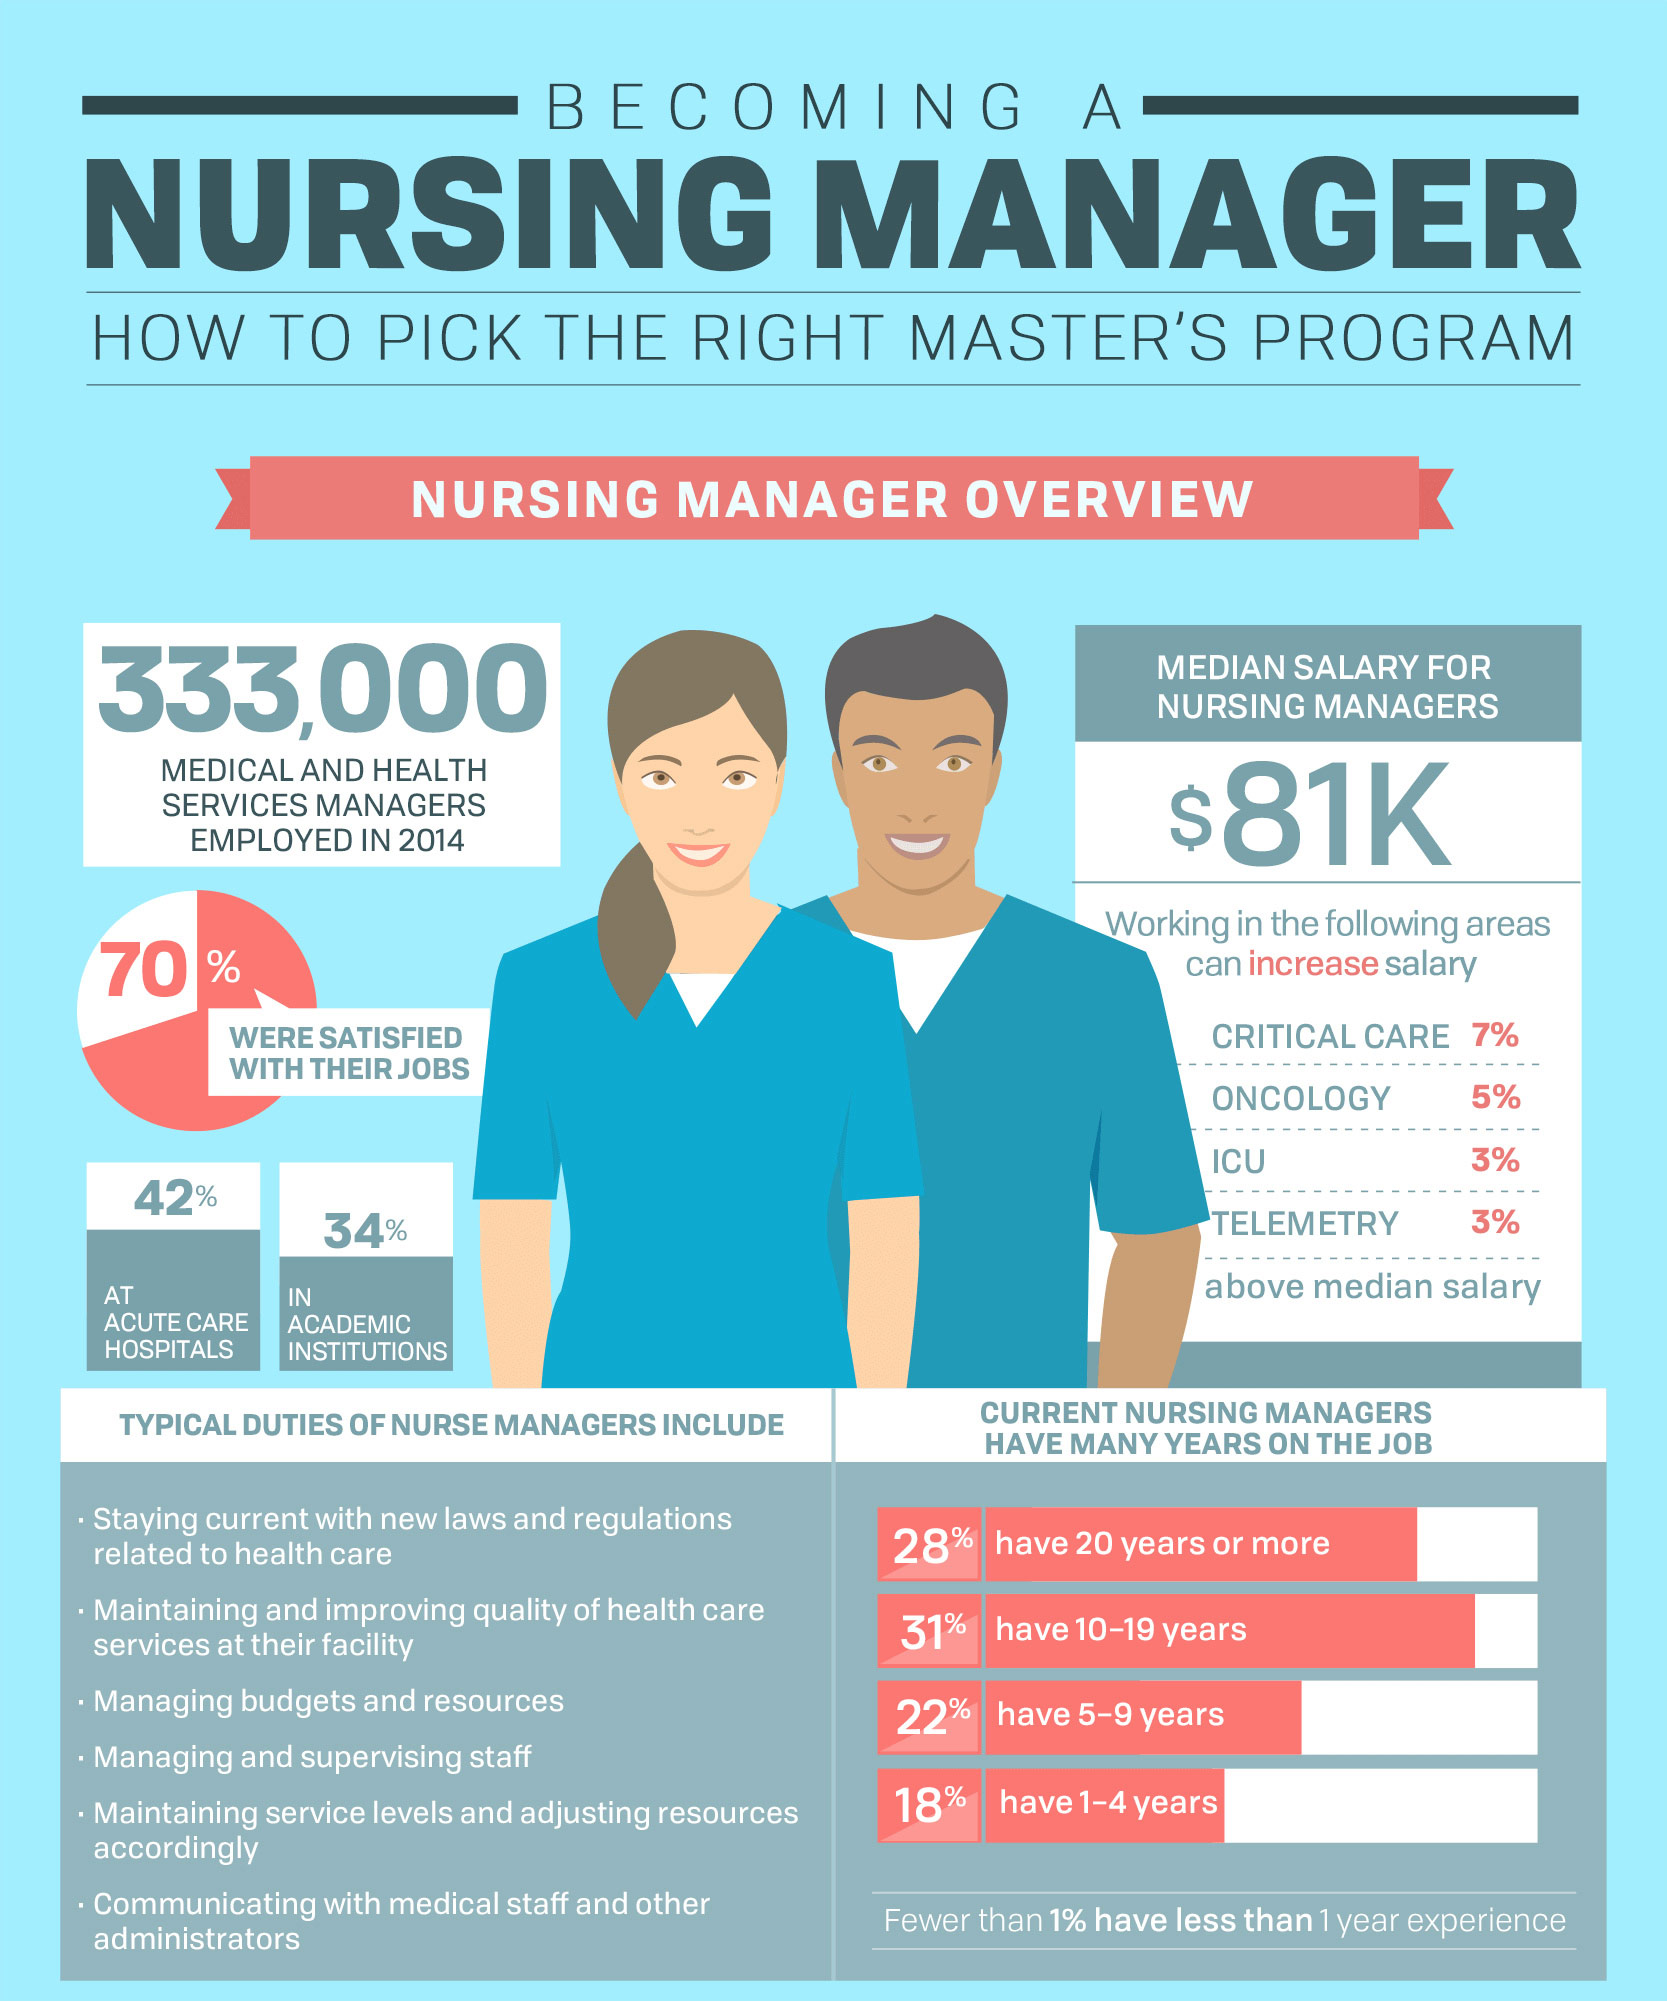 Want To Be A Nurse Manager Pick The Right Msn  Bradley University  Want To Be A Nurse Manager Pick The Right Msn  Bradley University   Bradley University Online Essay On Business also Who Can Do My Assignment For Me  Help For Business Plan Writing